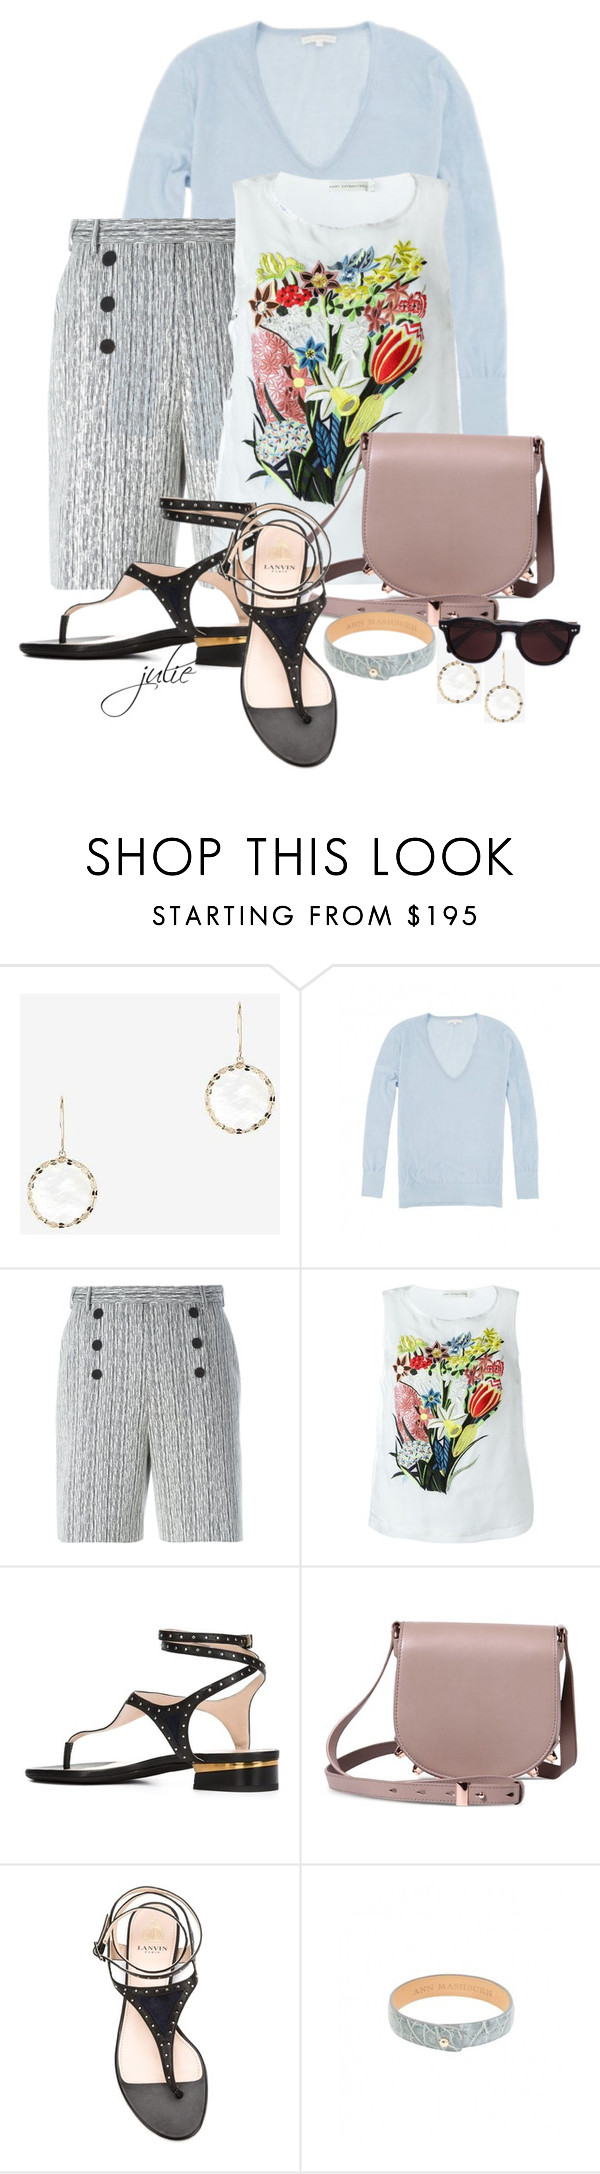 """""""High-Waisted Shorts"""" by scottiej ❤ liked on Polyvore featuring Lana Jewelry, Carven, Mary Katrantzou, Lanvin, Oliver Peoples, women's clothing, women, female, woman and misses"""